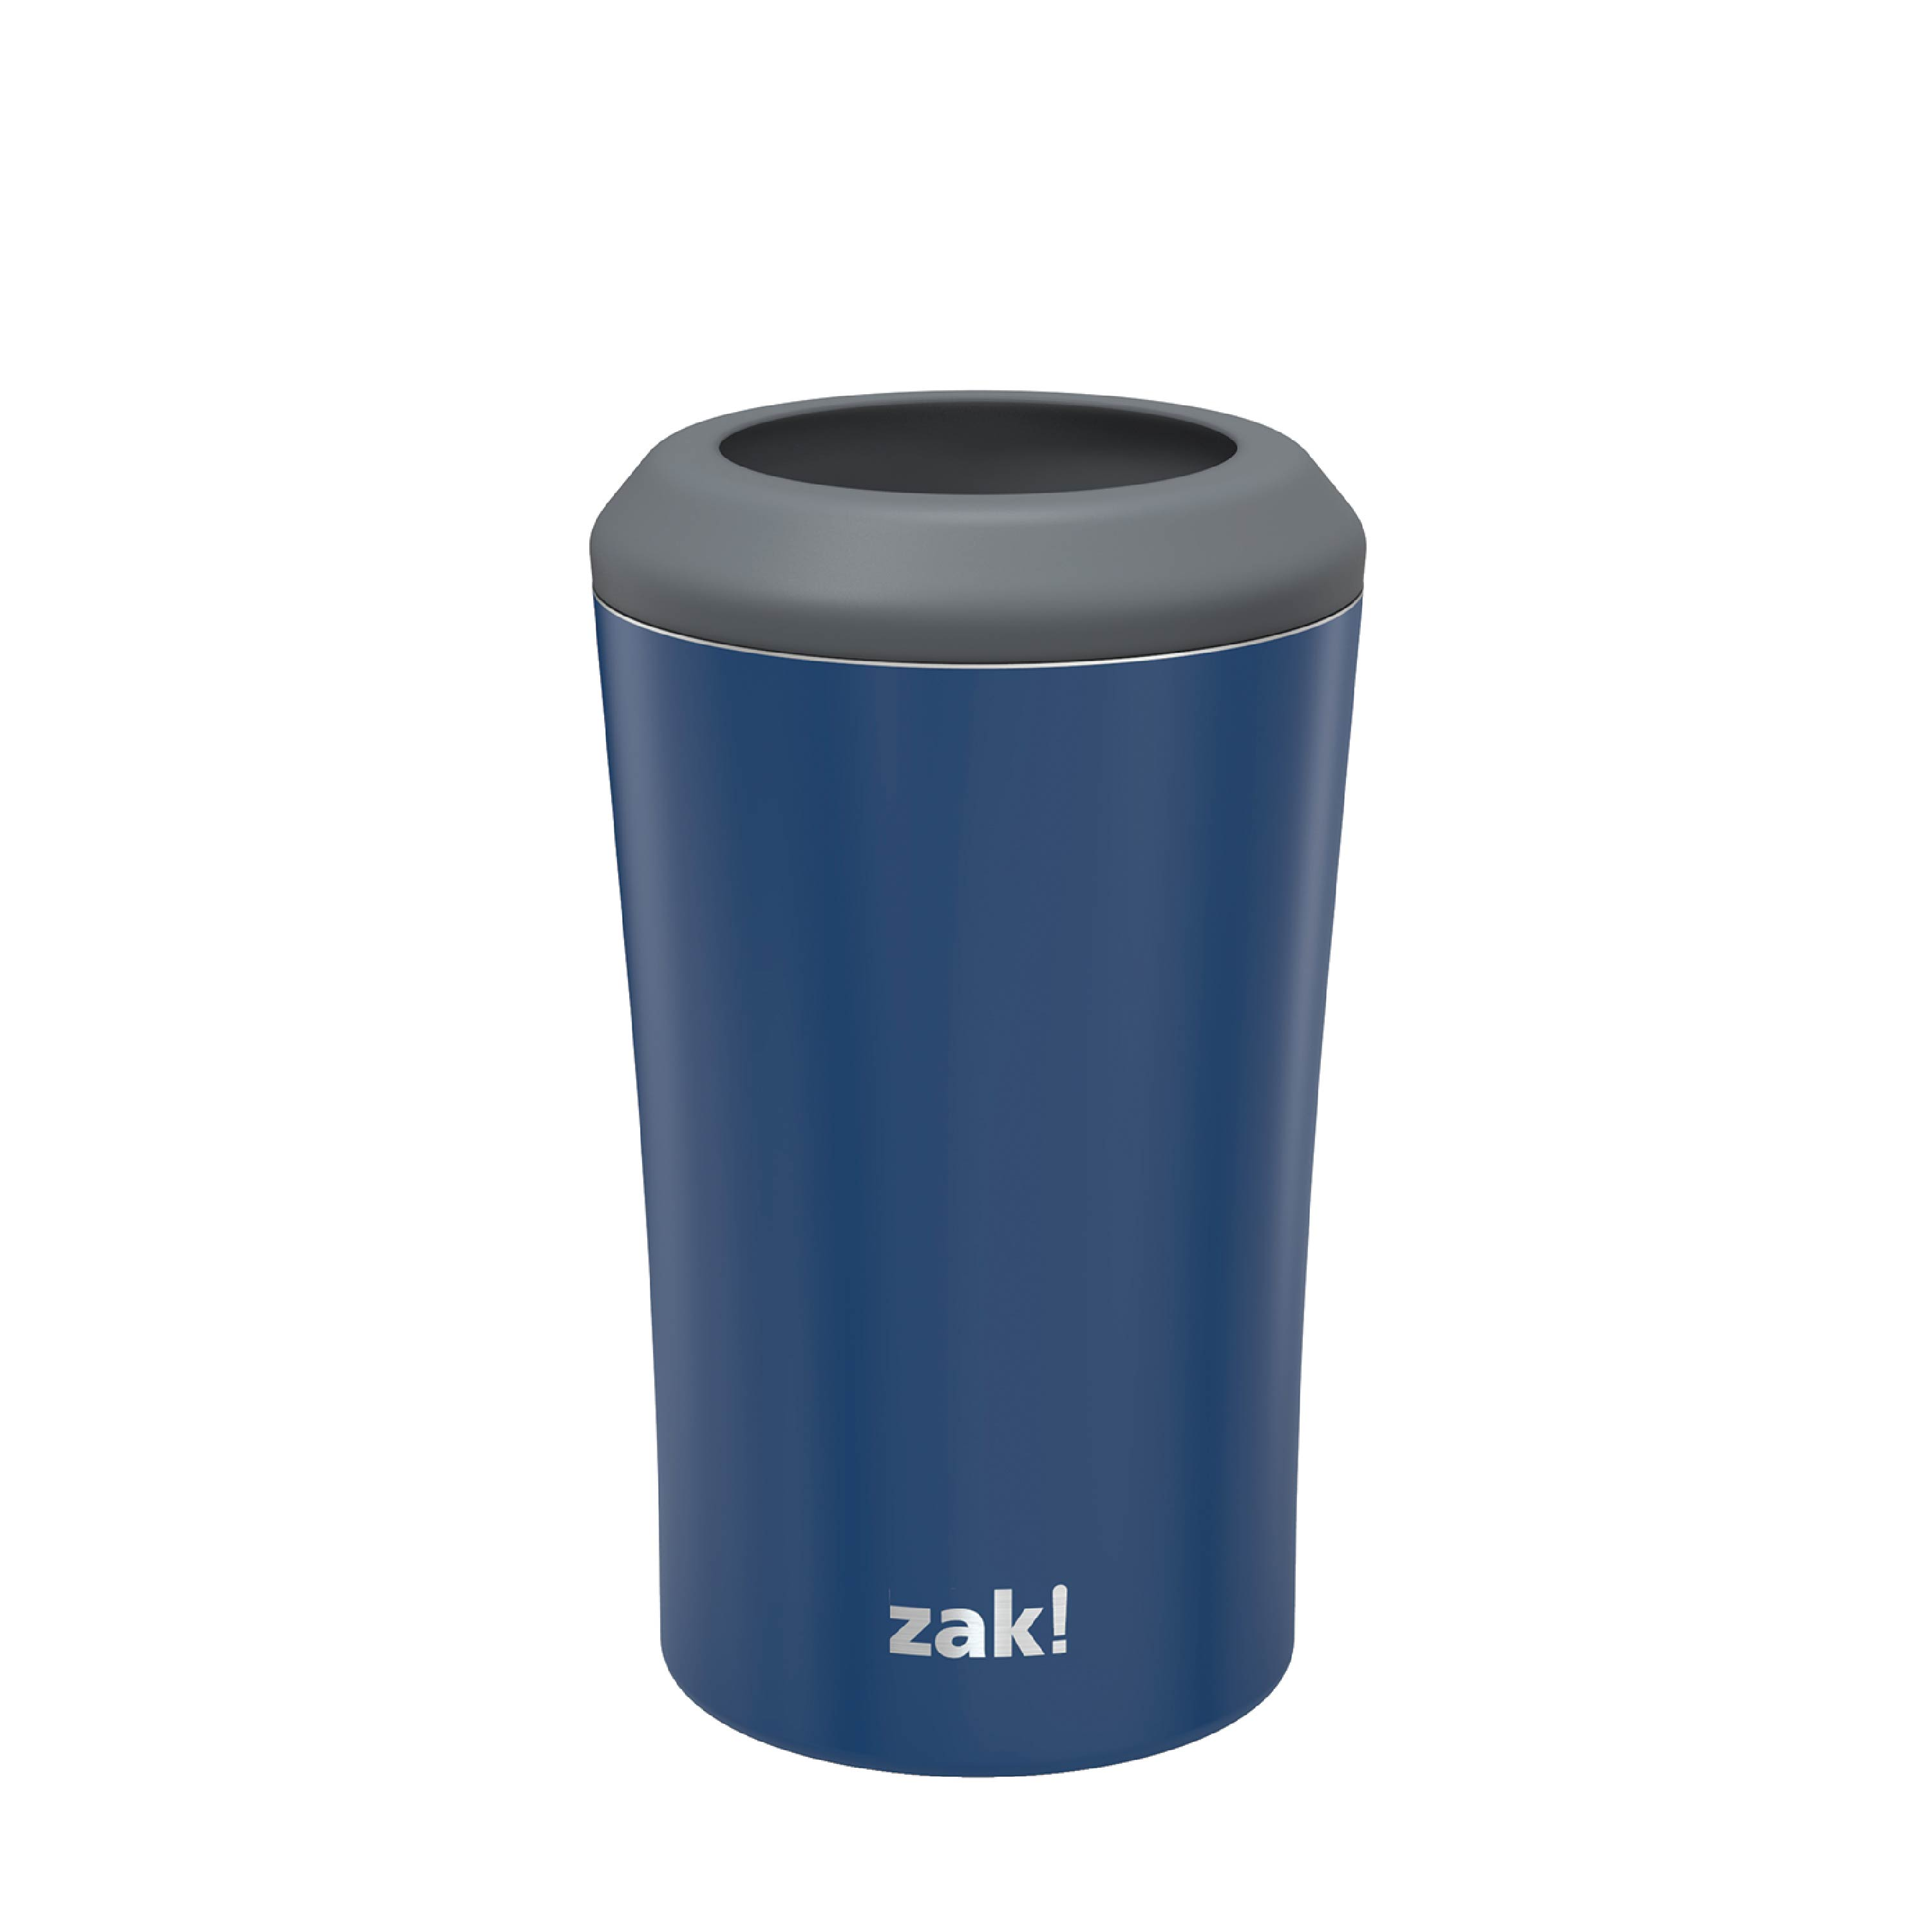 Zak Hydration 12 ounce Double Wall Stainless Steel Can and Bottle Cooler with Vacuum Insulation, Indigo slideshow image 1